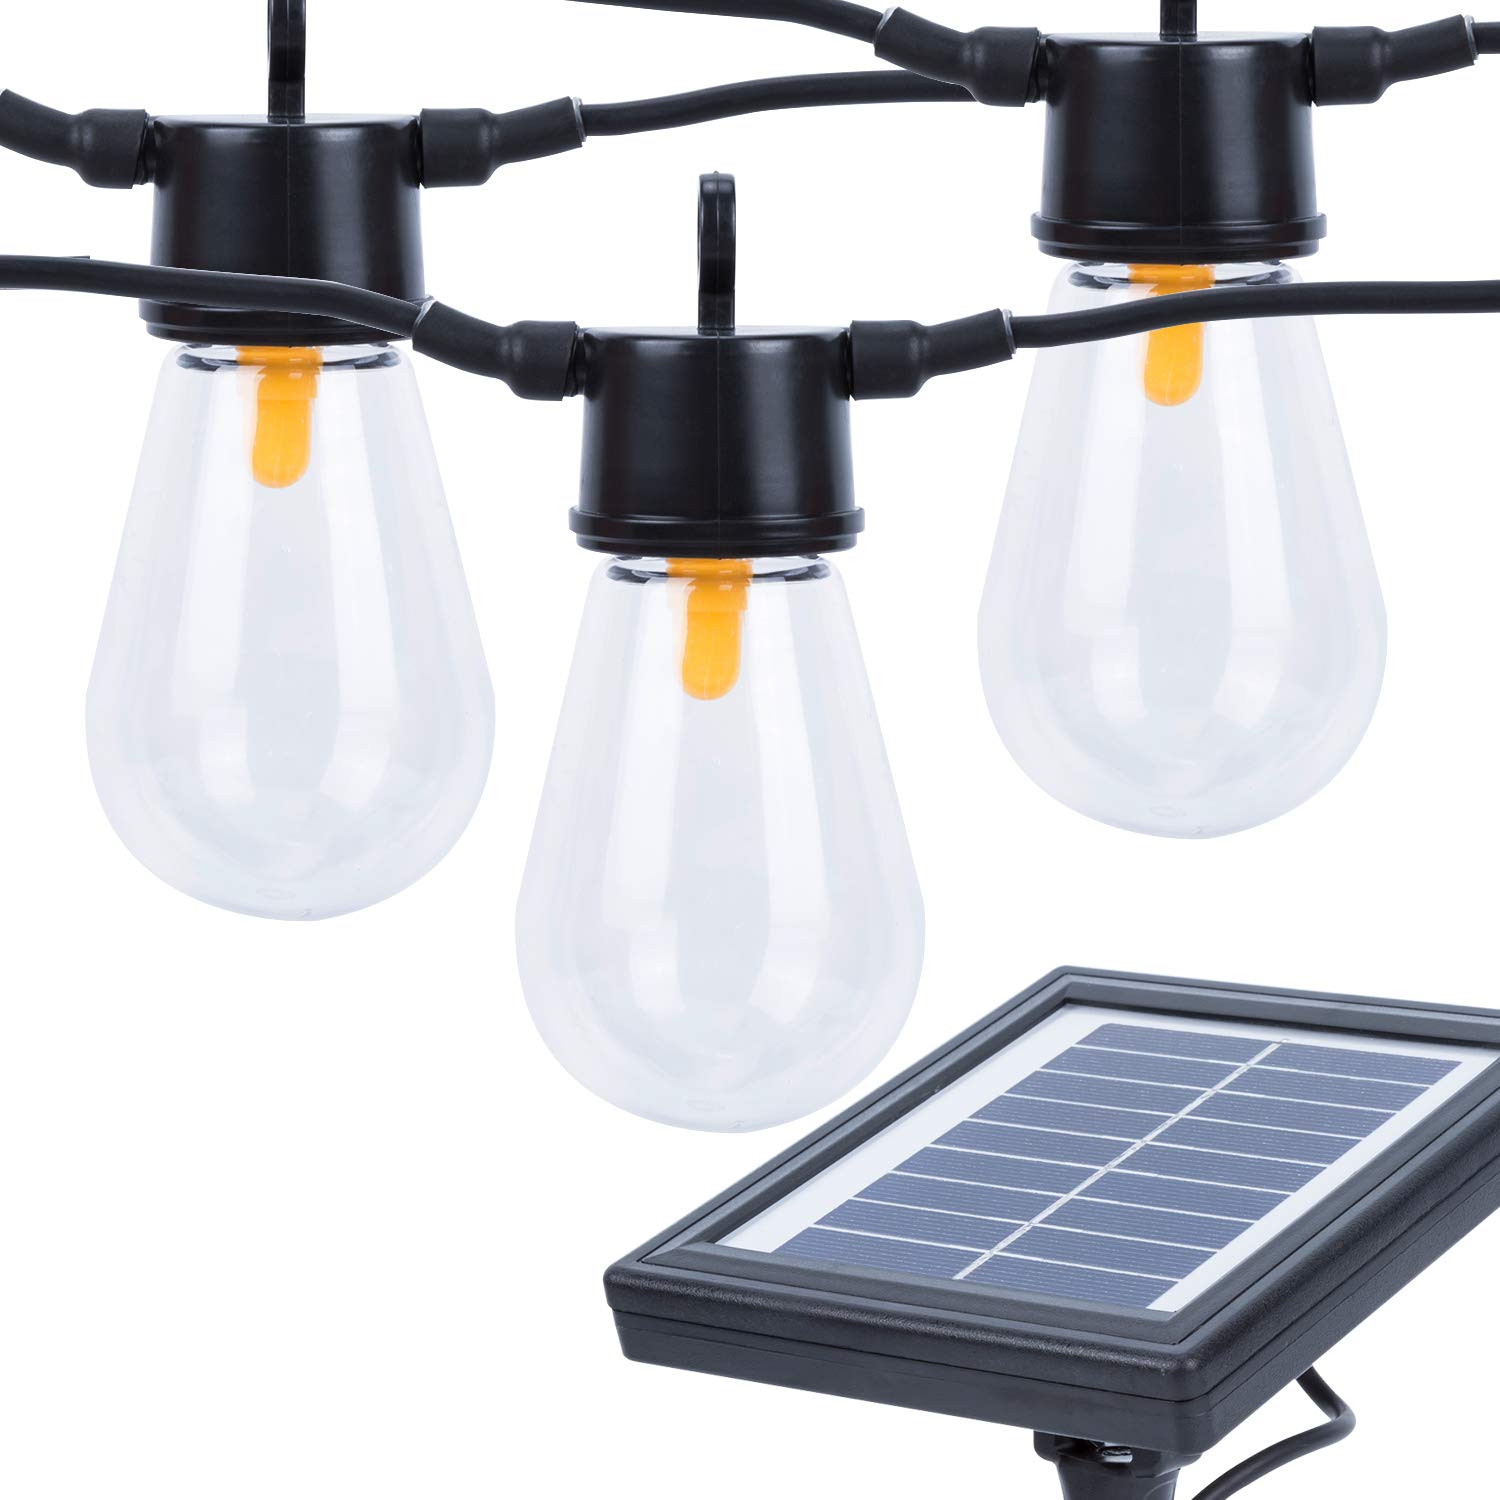 Ideaworks Outdoor Solar String Led Lights: Karecel Solar Powered LED Outdoor Solar String Lights